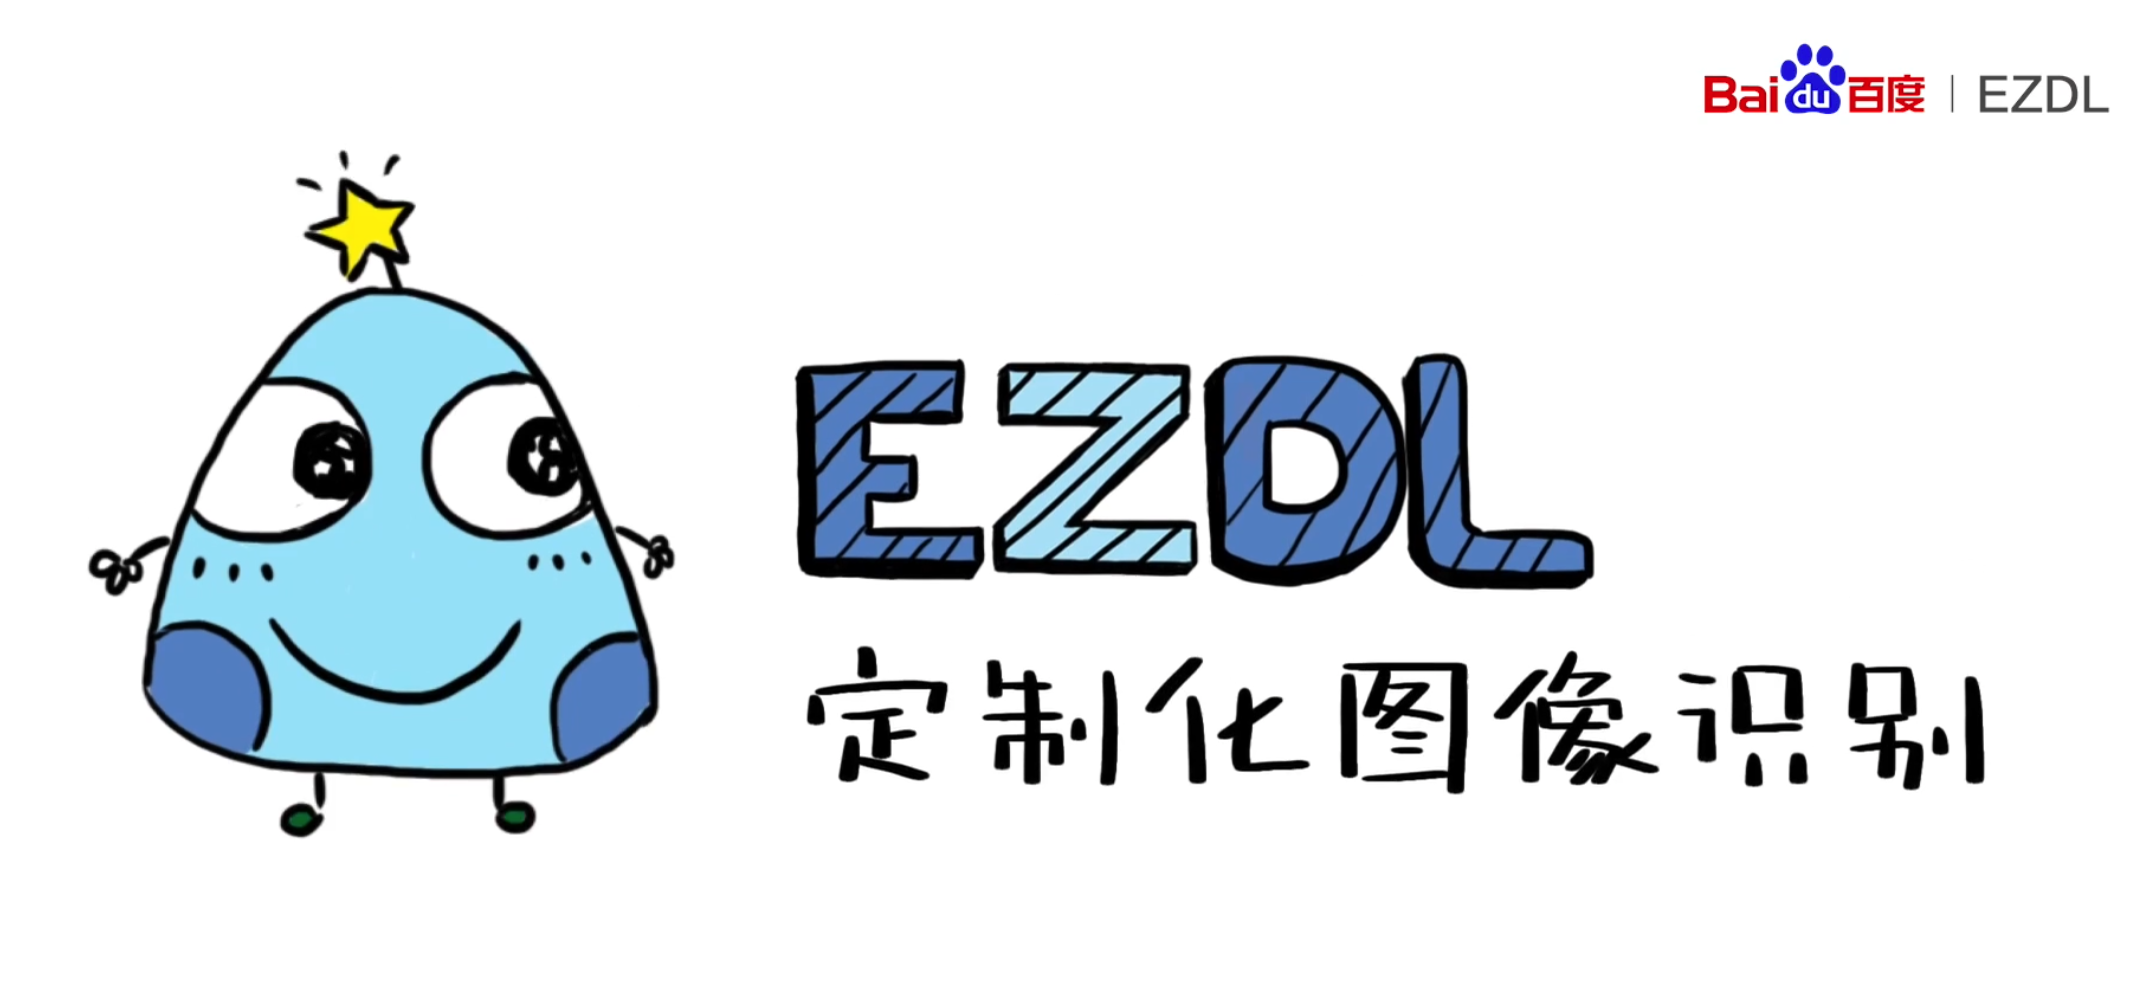 Baidu Releases EZDL, an Automated Machine Learning Tool for Non